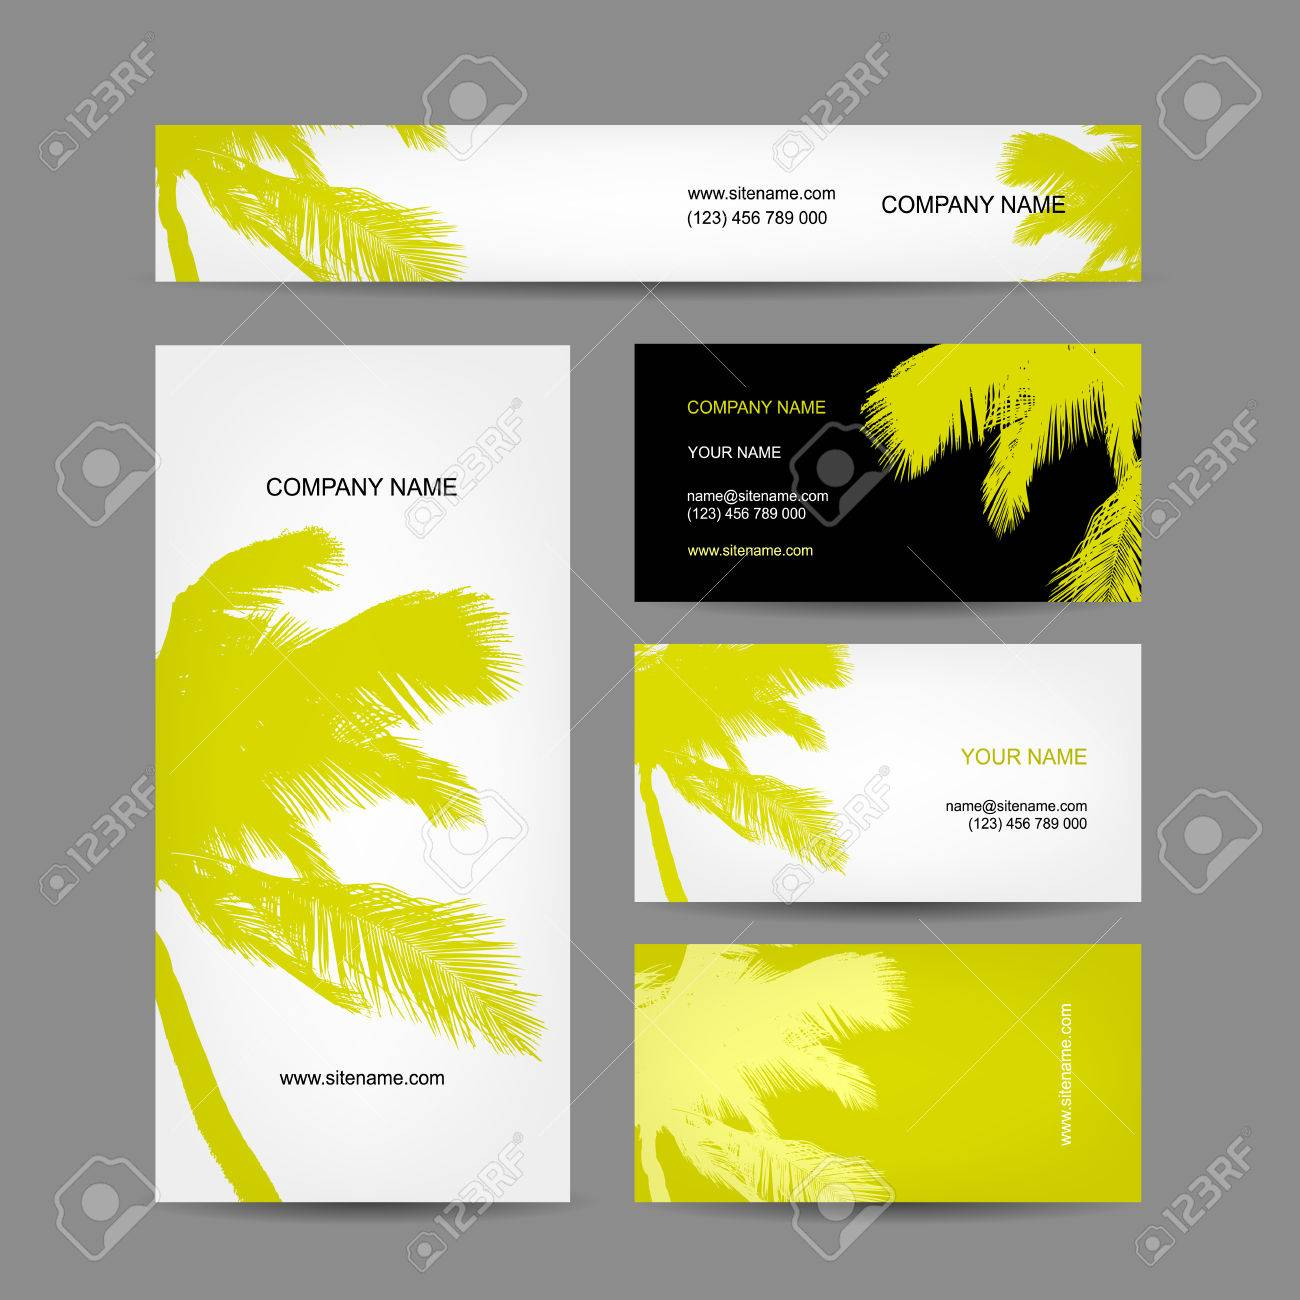 Set of business cards design palm tree royalty free cliparts set of business cards design palm tree stock vector 29227254 colourmoves